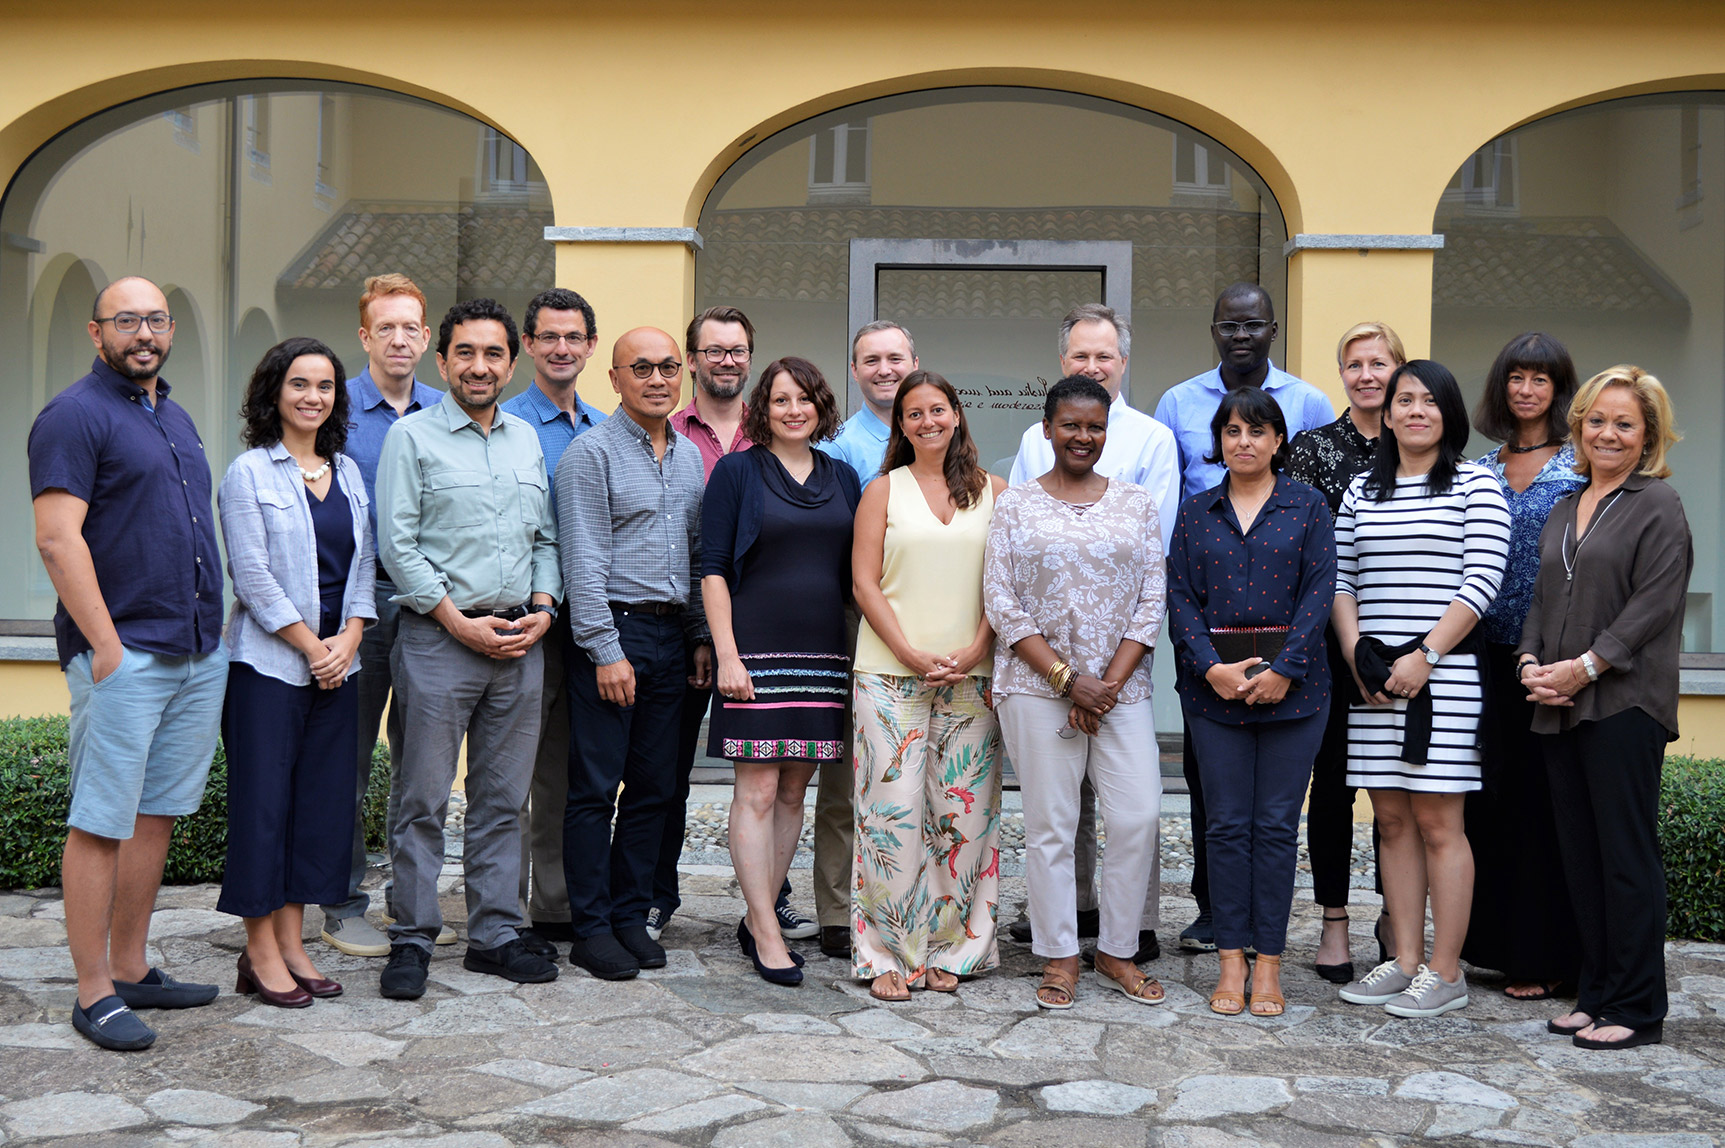 Participants from the August, 2019 Civic Space 2040 kick-off meeting. The meeting gathered thought leaders, experts, and activists from around the world at the Rockefeller Foundation's Bellagio Center in Italy to explore trends that will radically transform civic space in the future. (Photo: ICNL)